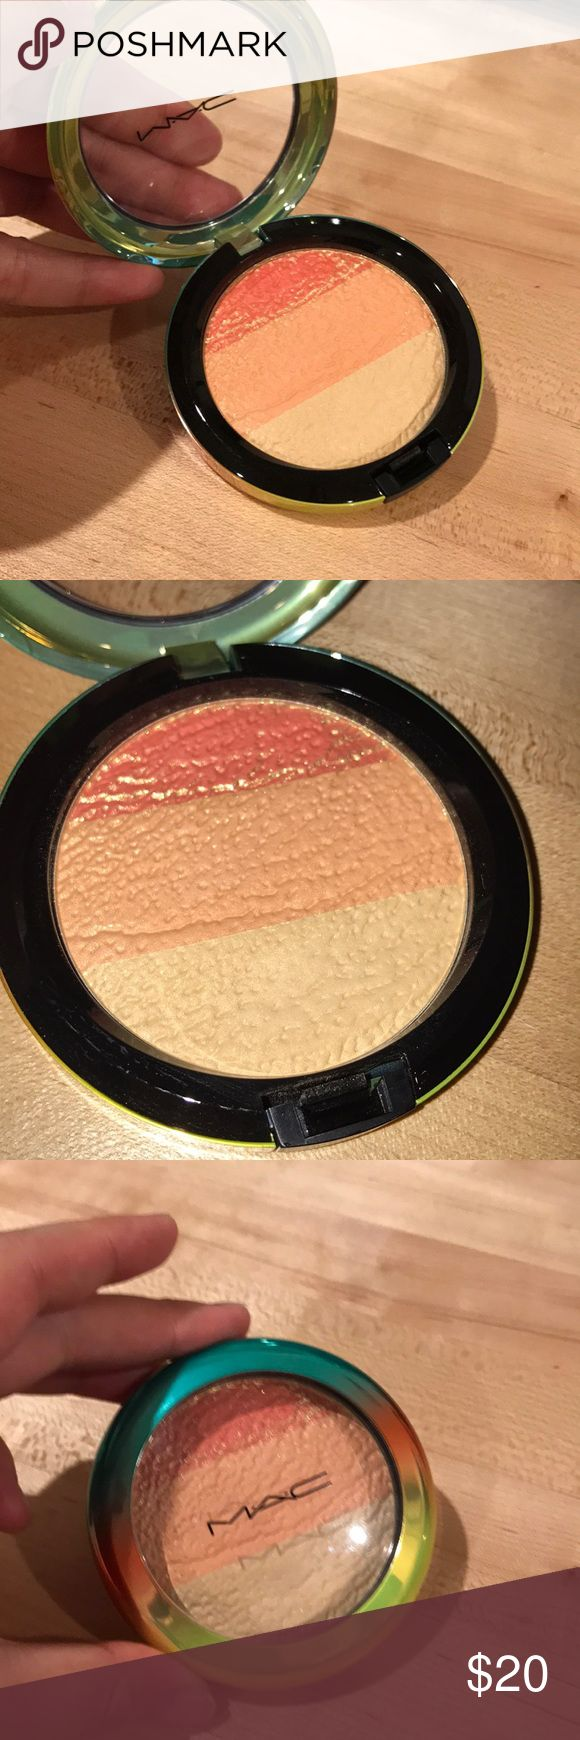 Mac Freshen Up High-Light Powder Limited edition! Used a couple of times and the golden layer on top is gone but is still in good condition. Has a very pretty natural glow. Still have the box. MAC Cosmetics Makeup Luminizer